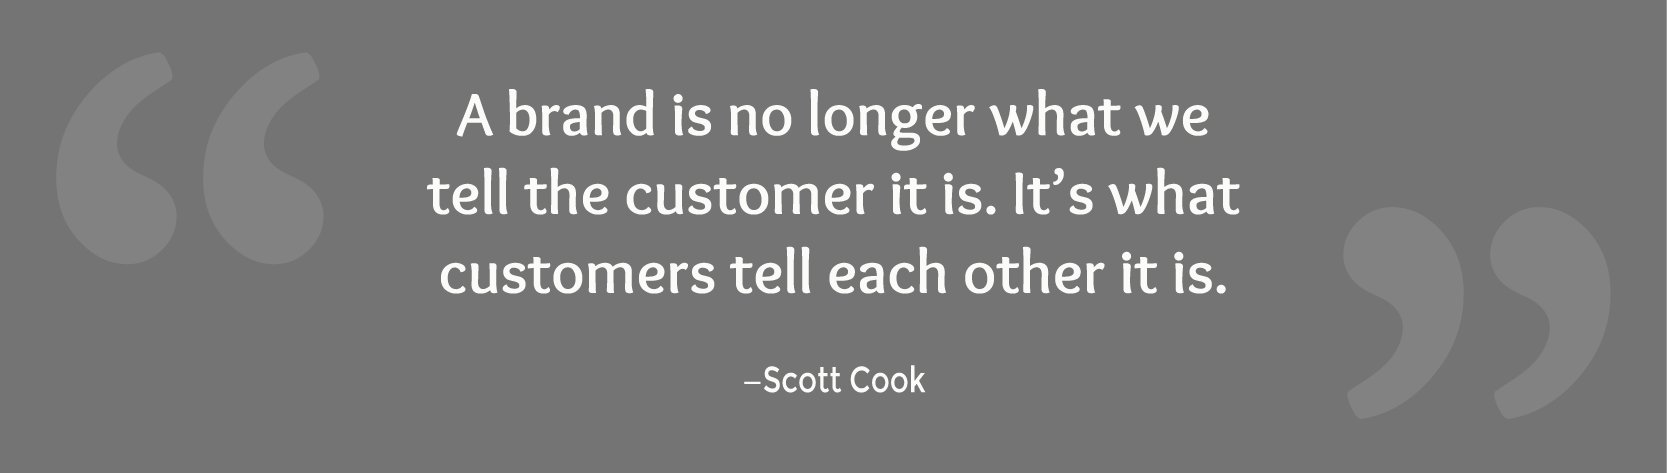 consulting-social-quotes-05.png